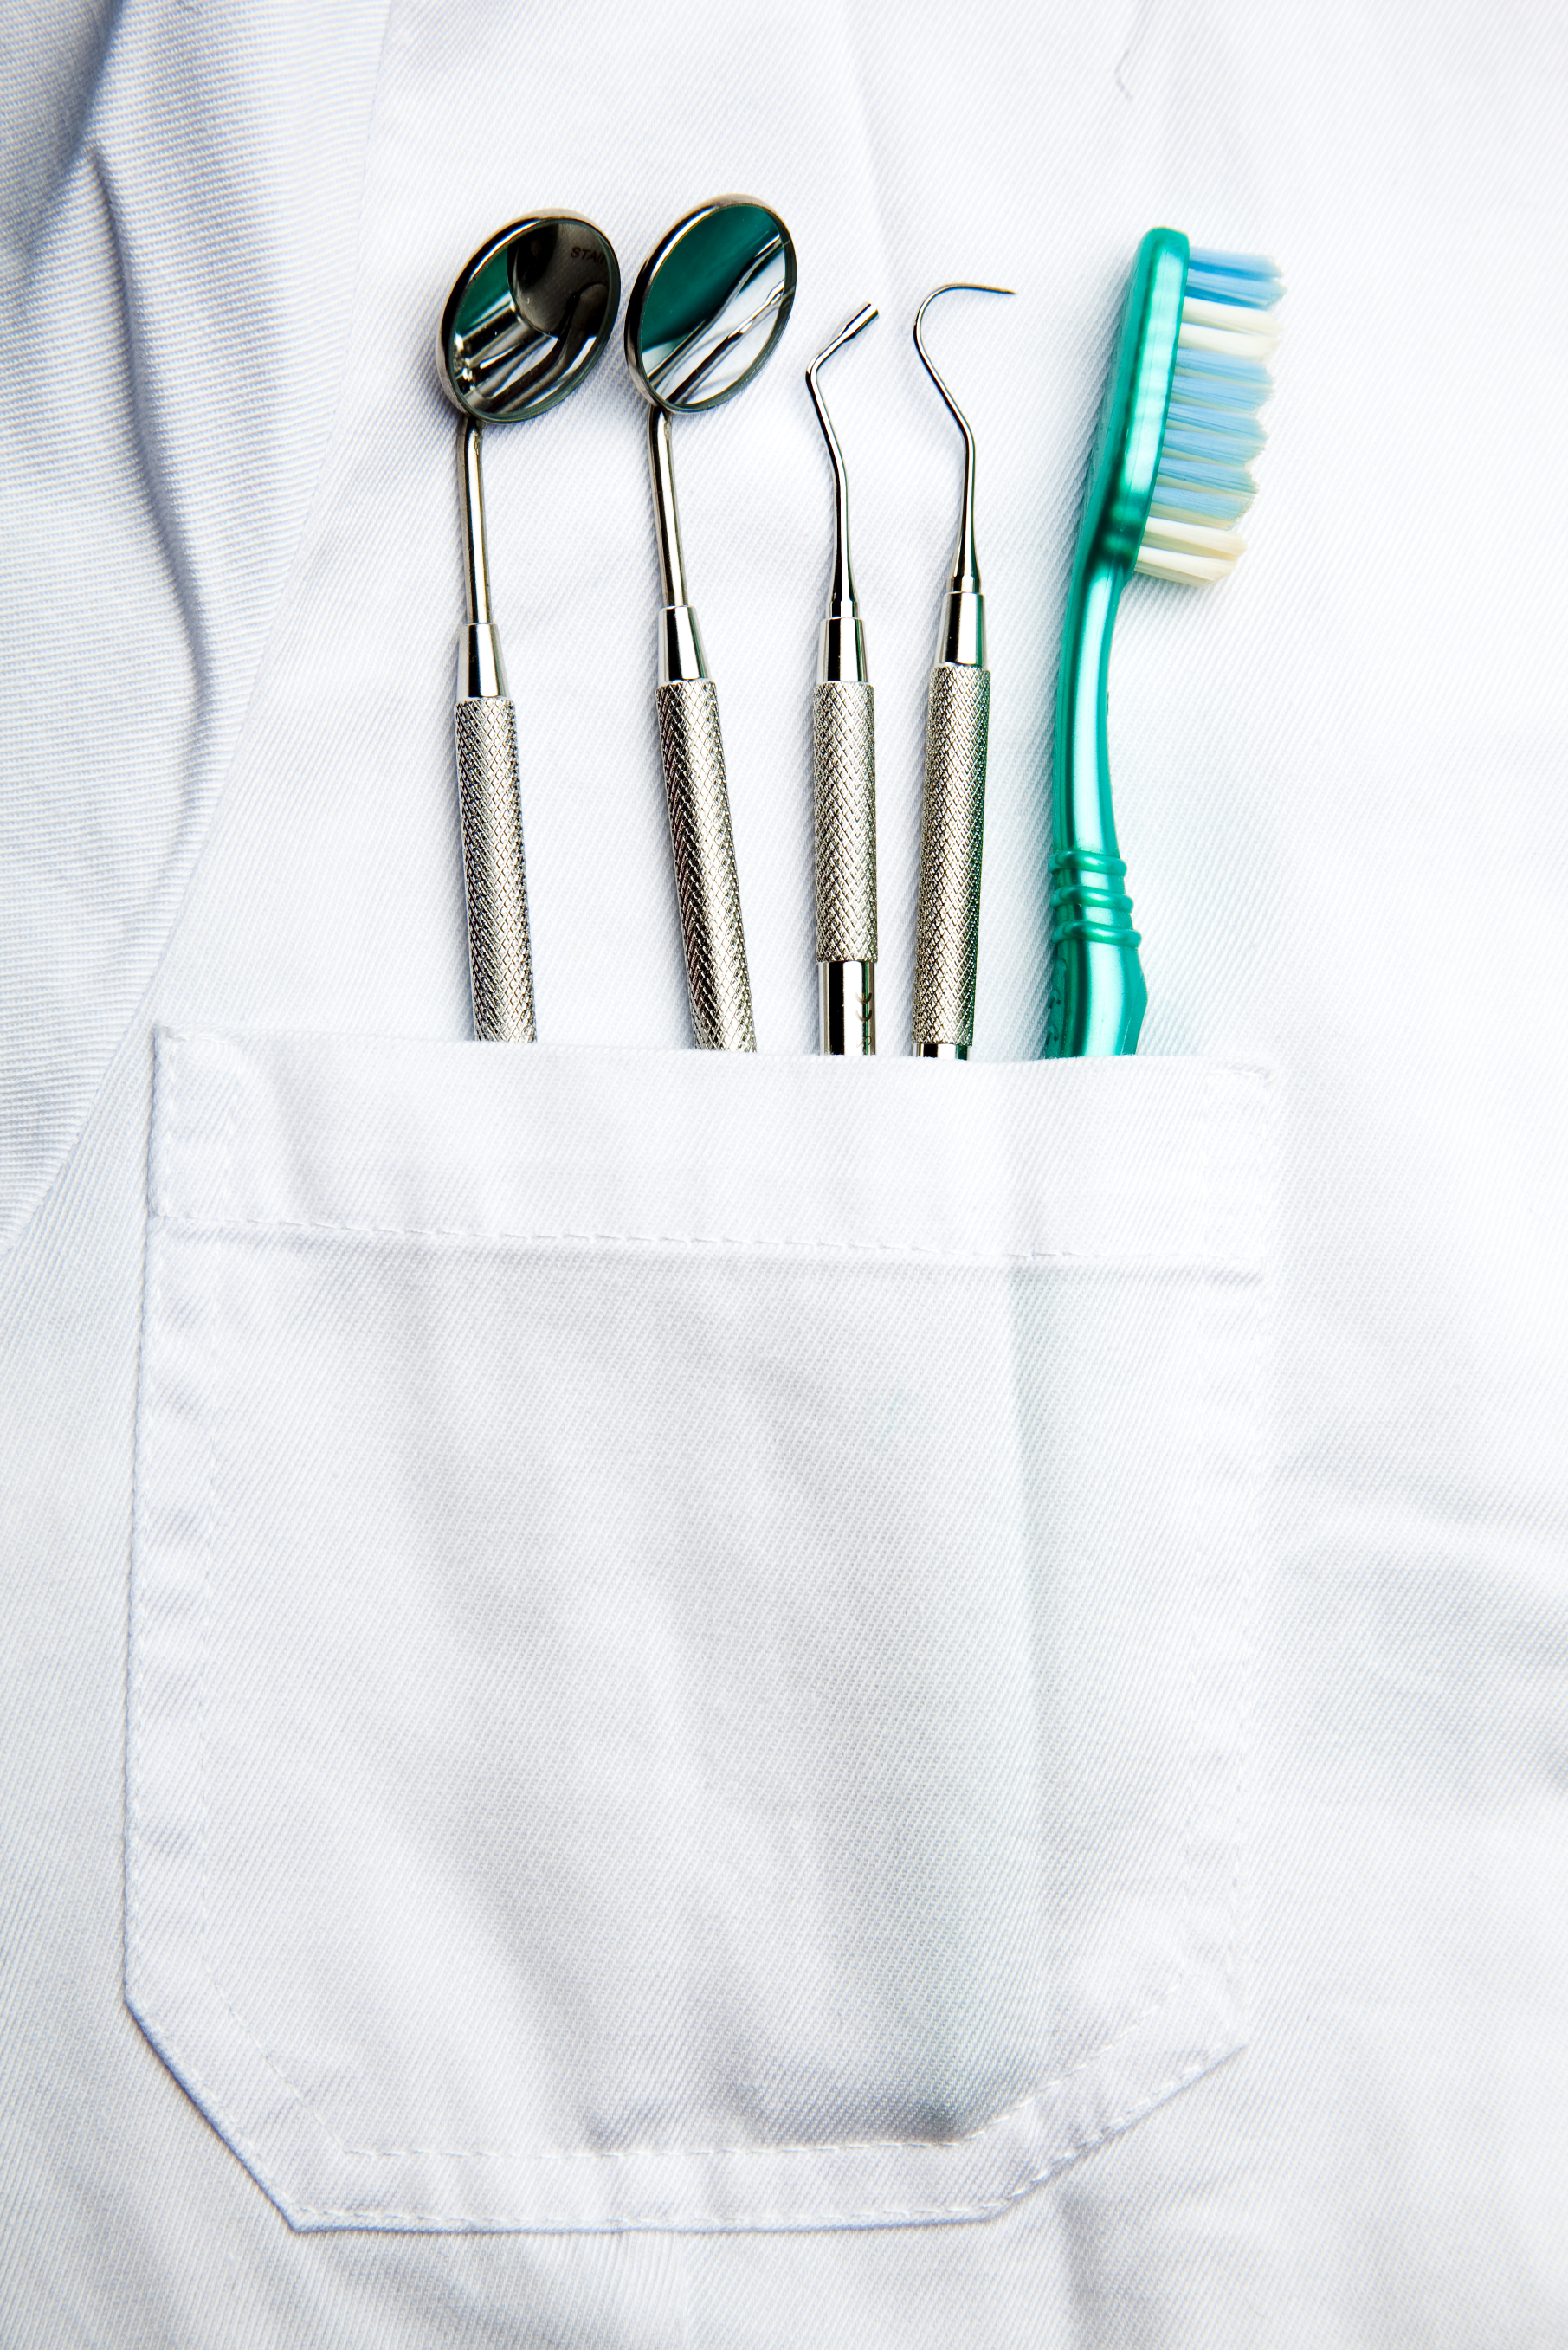 Dental-Tools-Instruments.jpg